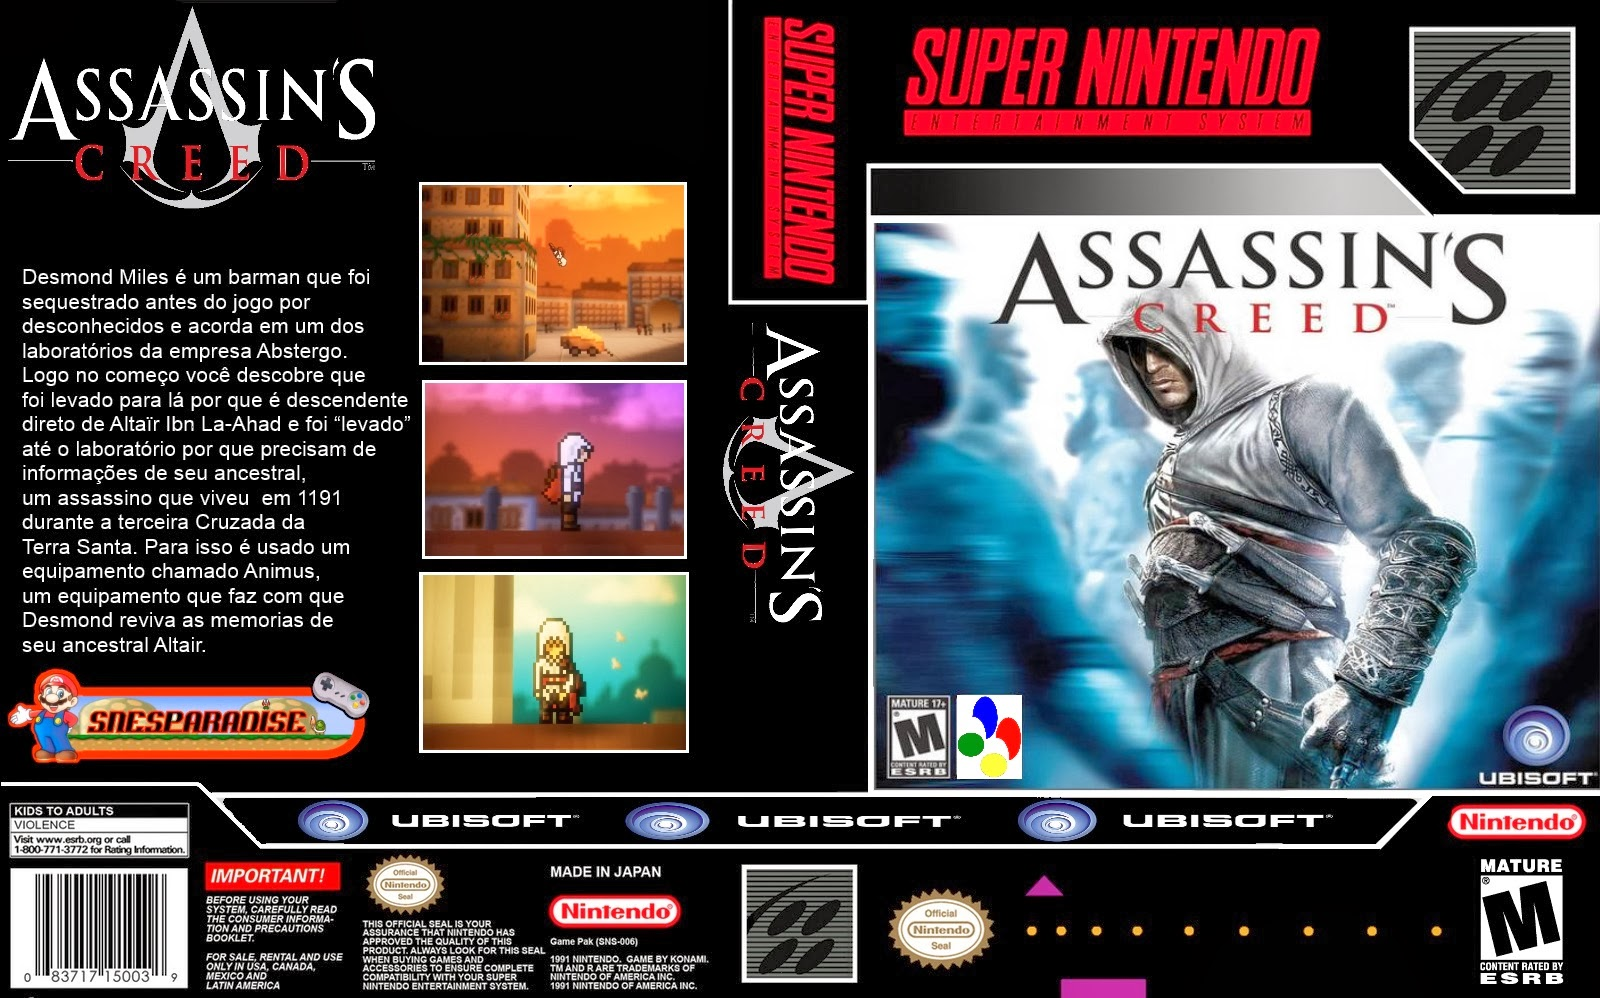 Assasins Creed Super Nintendo